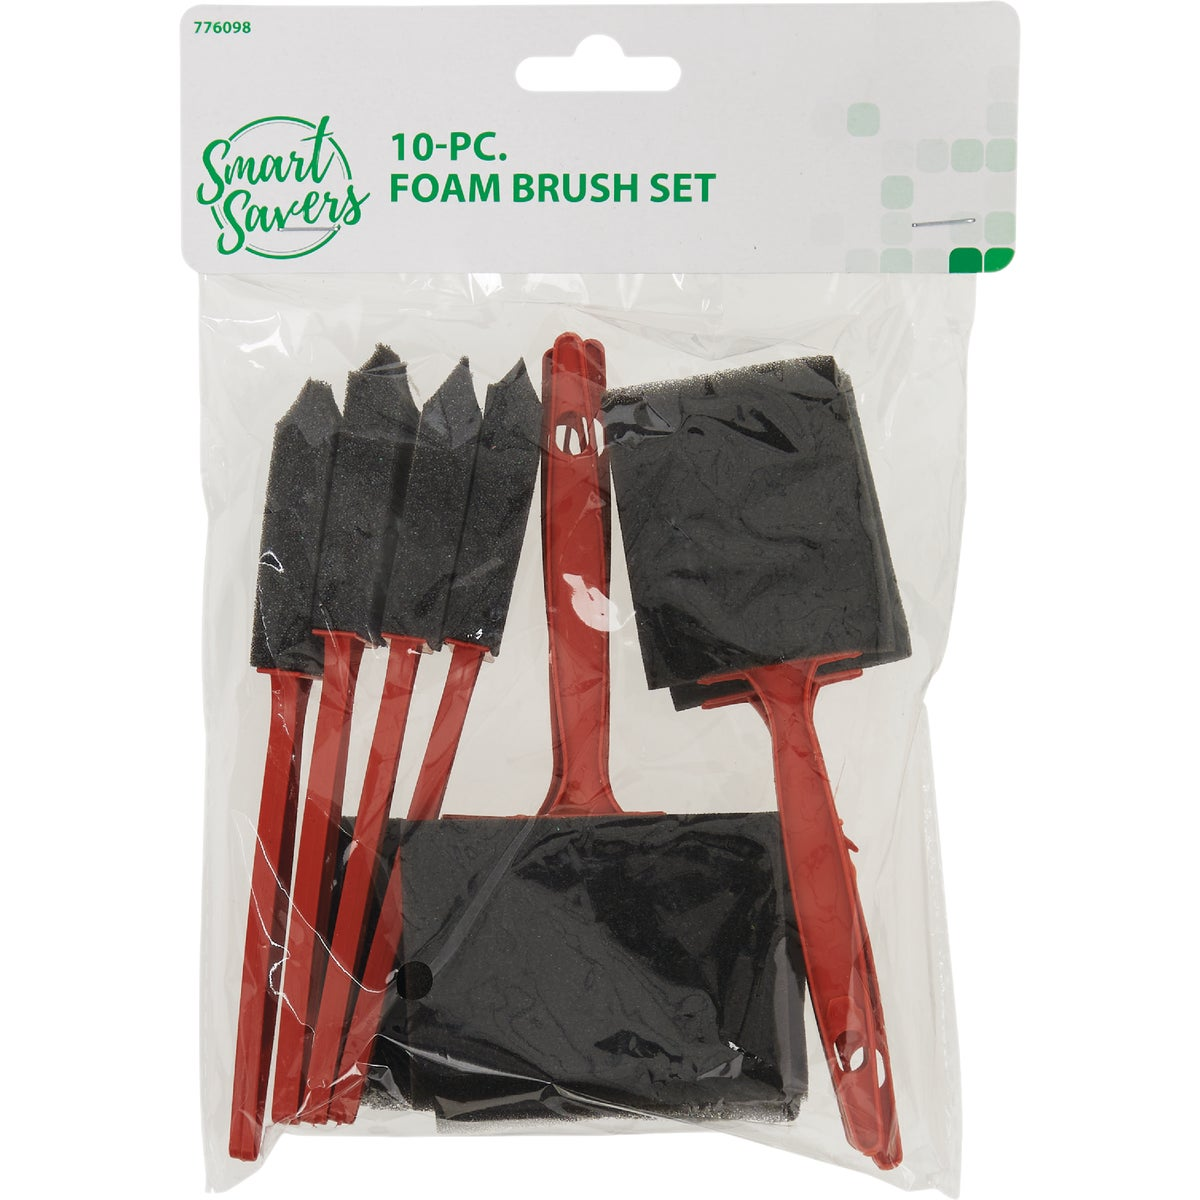 10PC FOAM BRUSH - CC101062 by Do it Best